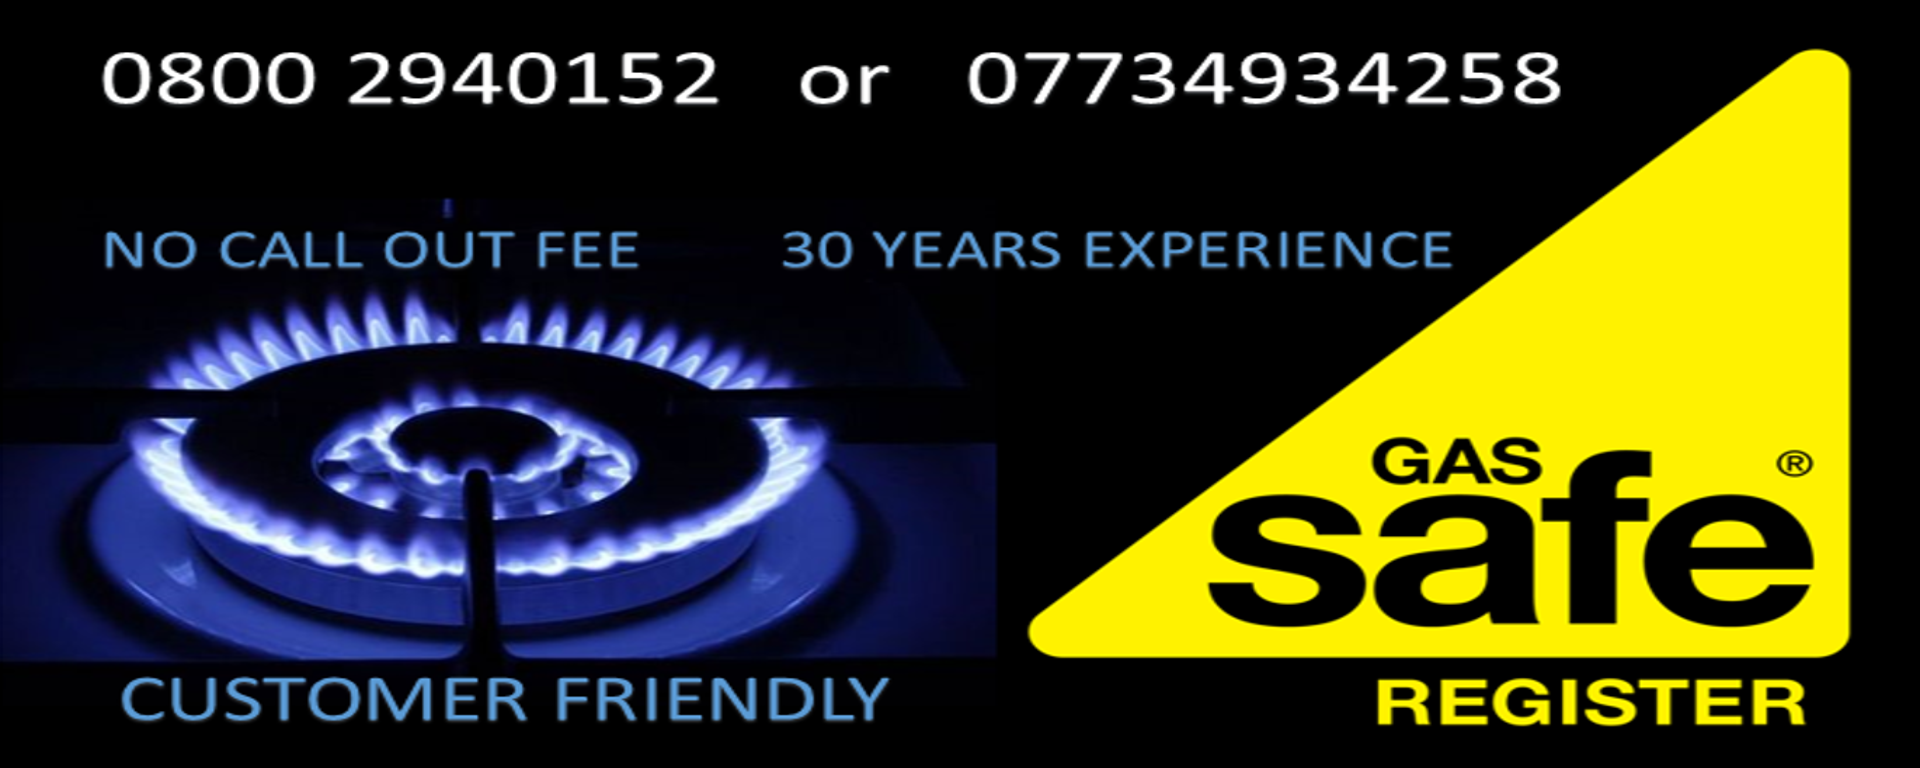 North West Cooker Repairs - Gas cooker Repairs North West